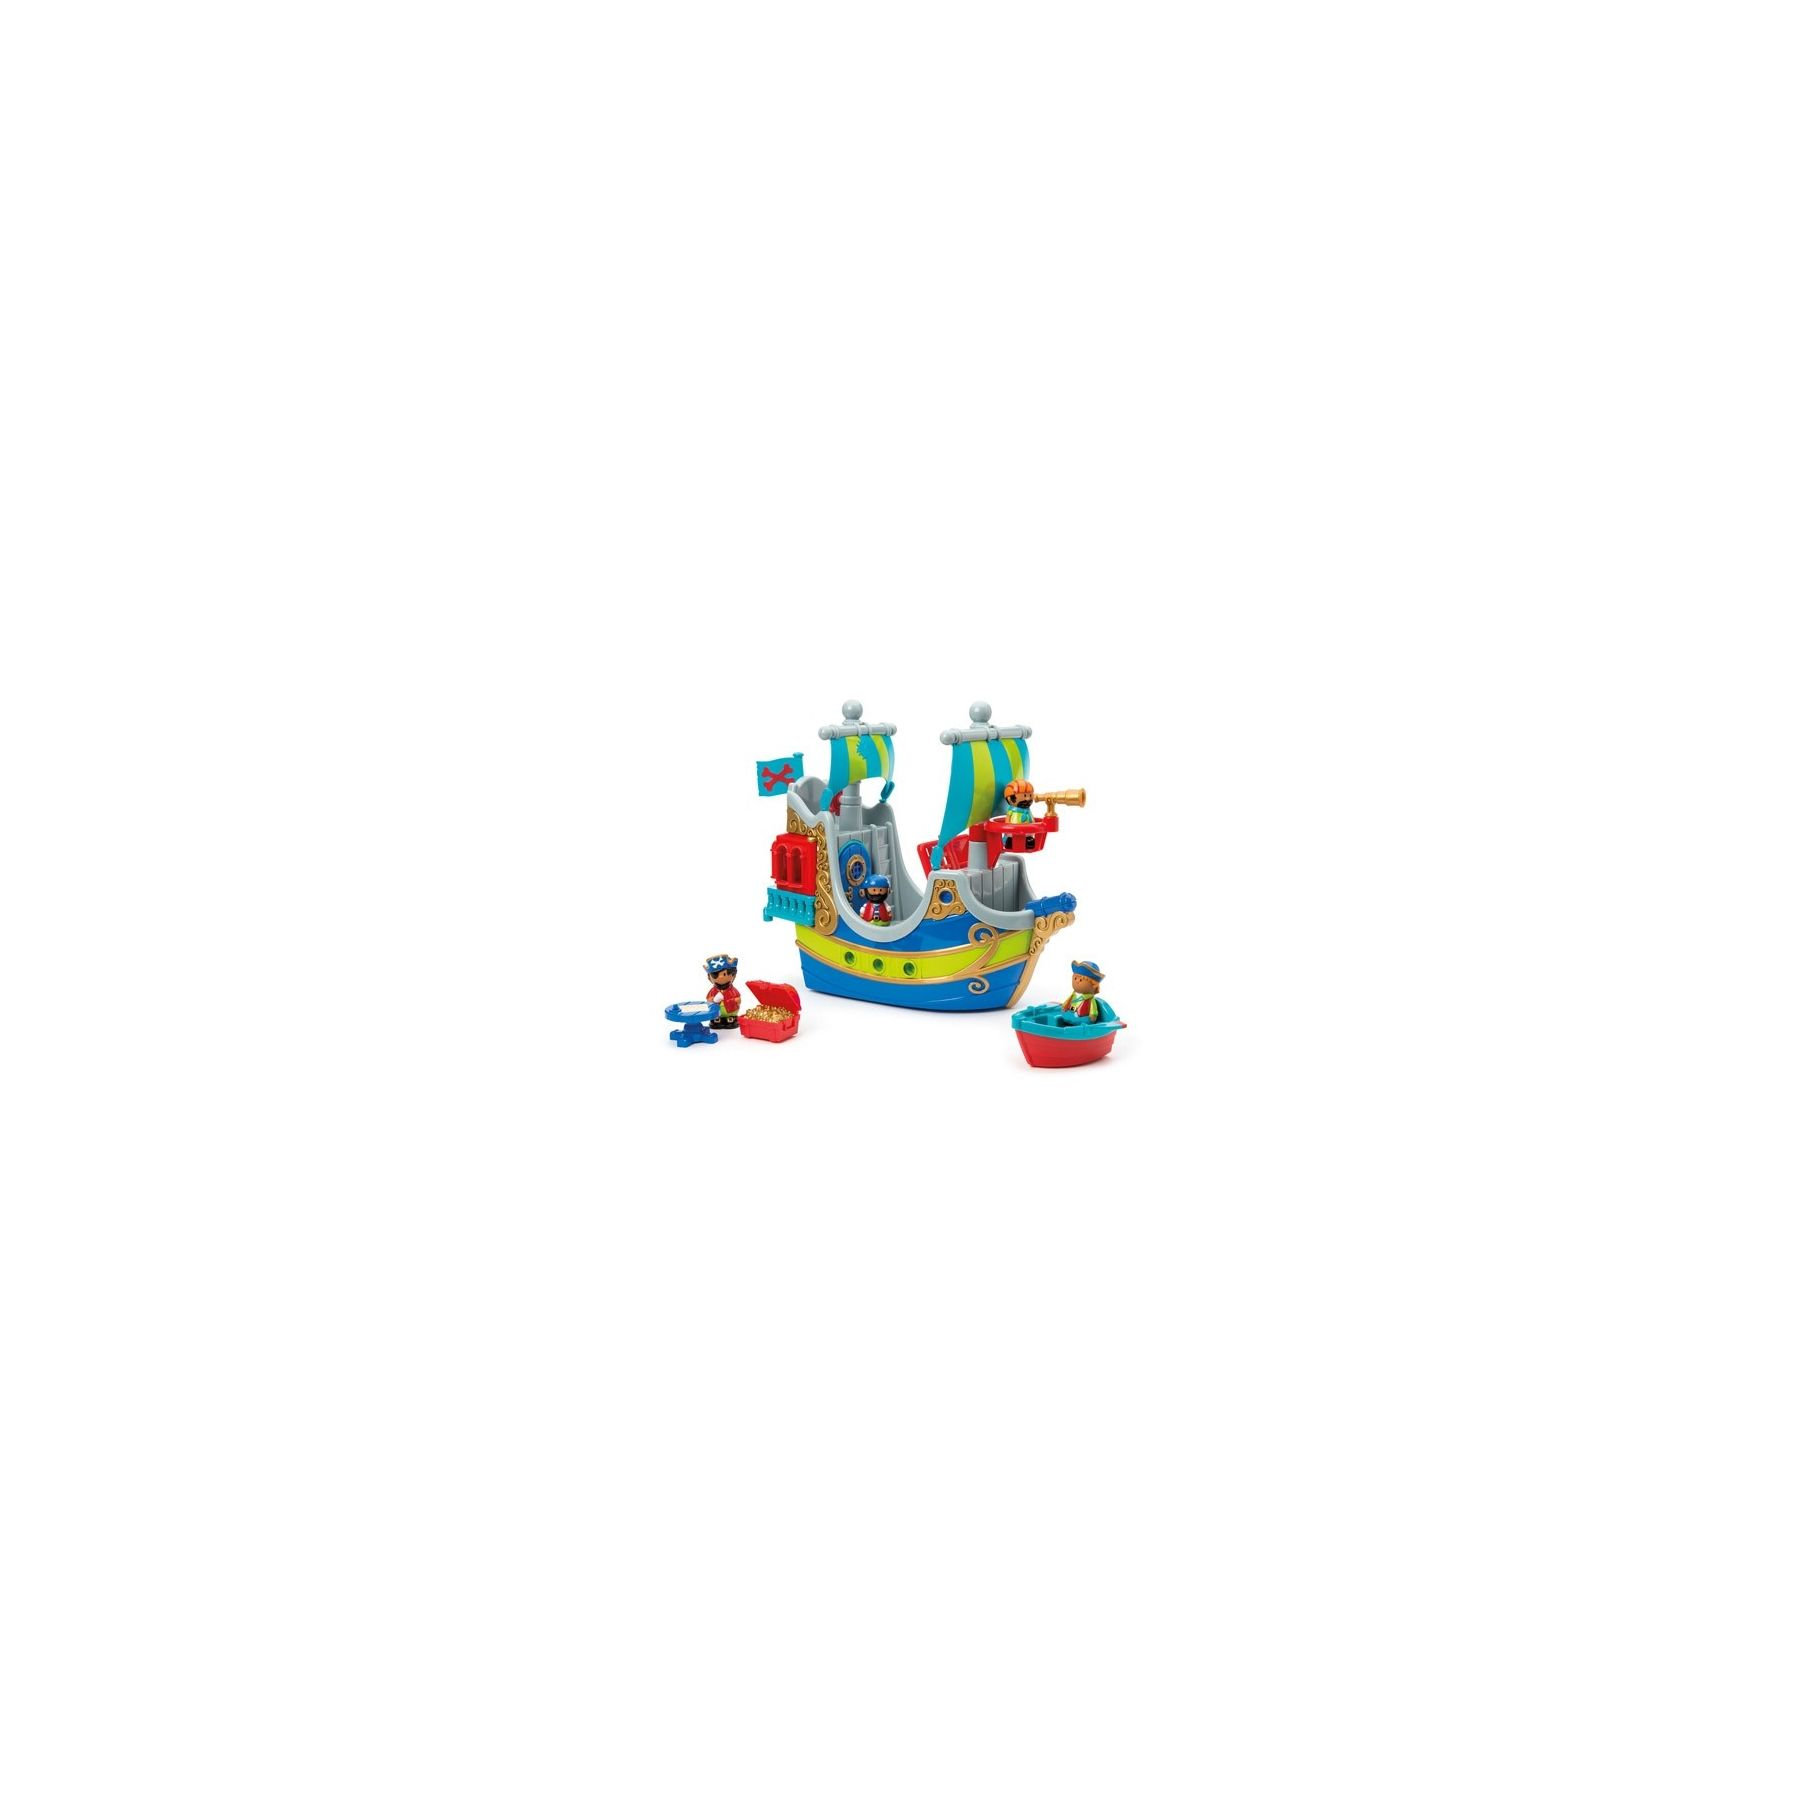 Jouet Bateau pirate enfant Happyland Early Learning Centre